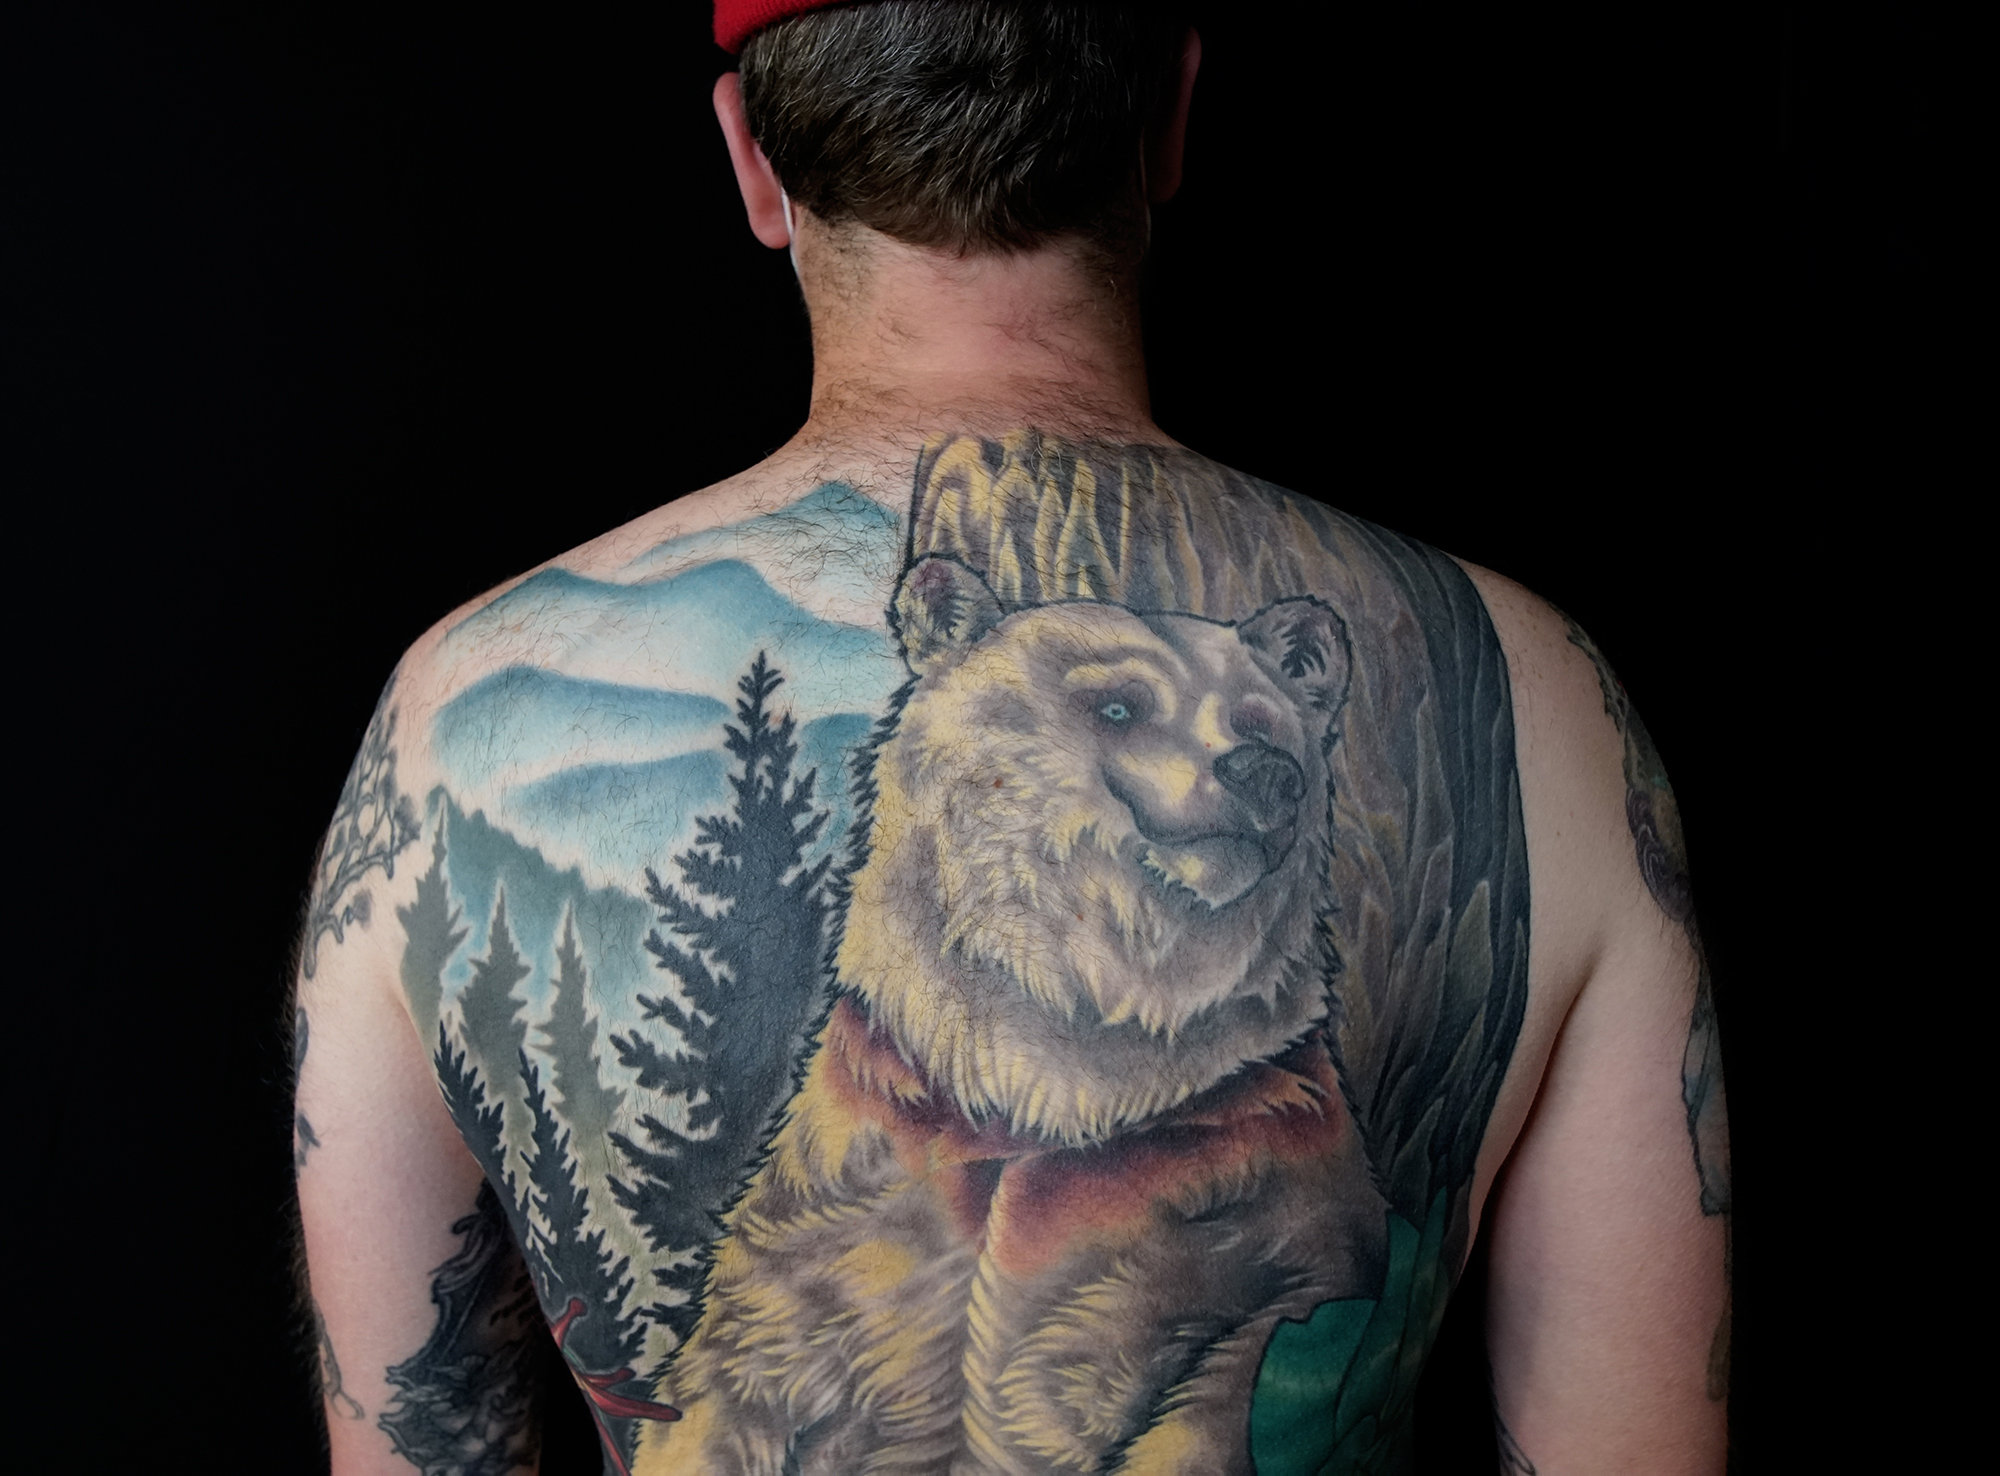 Back color tattoo, nature theme with big bear and plants by hannah wolf